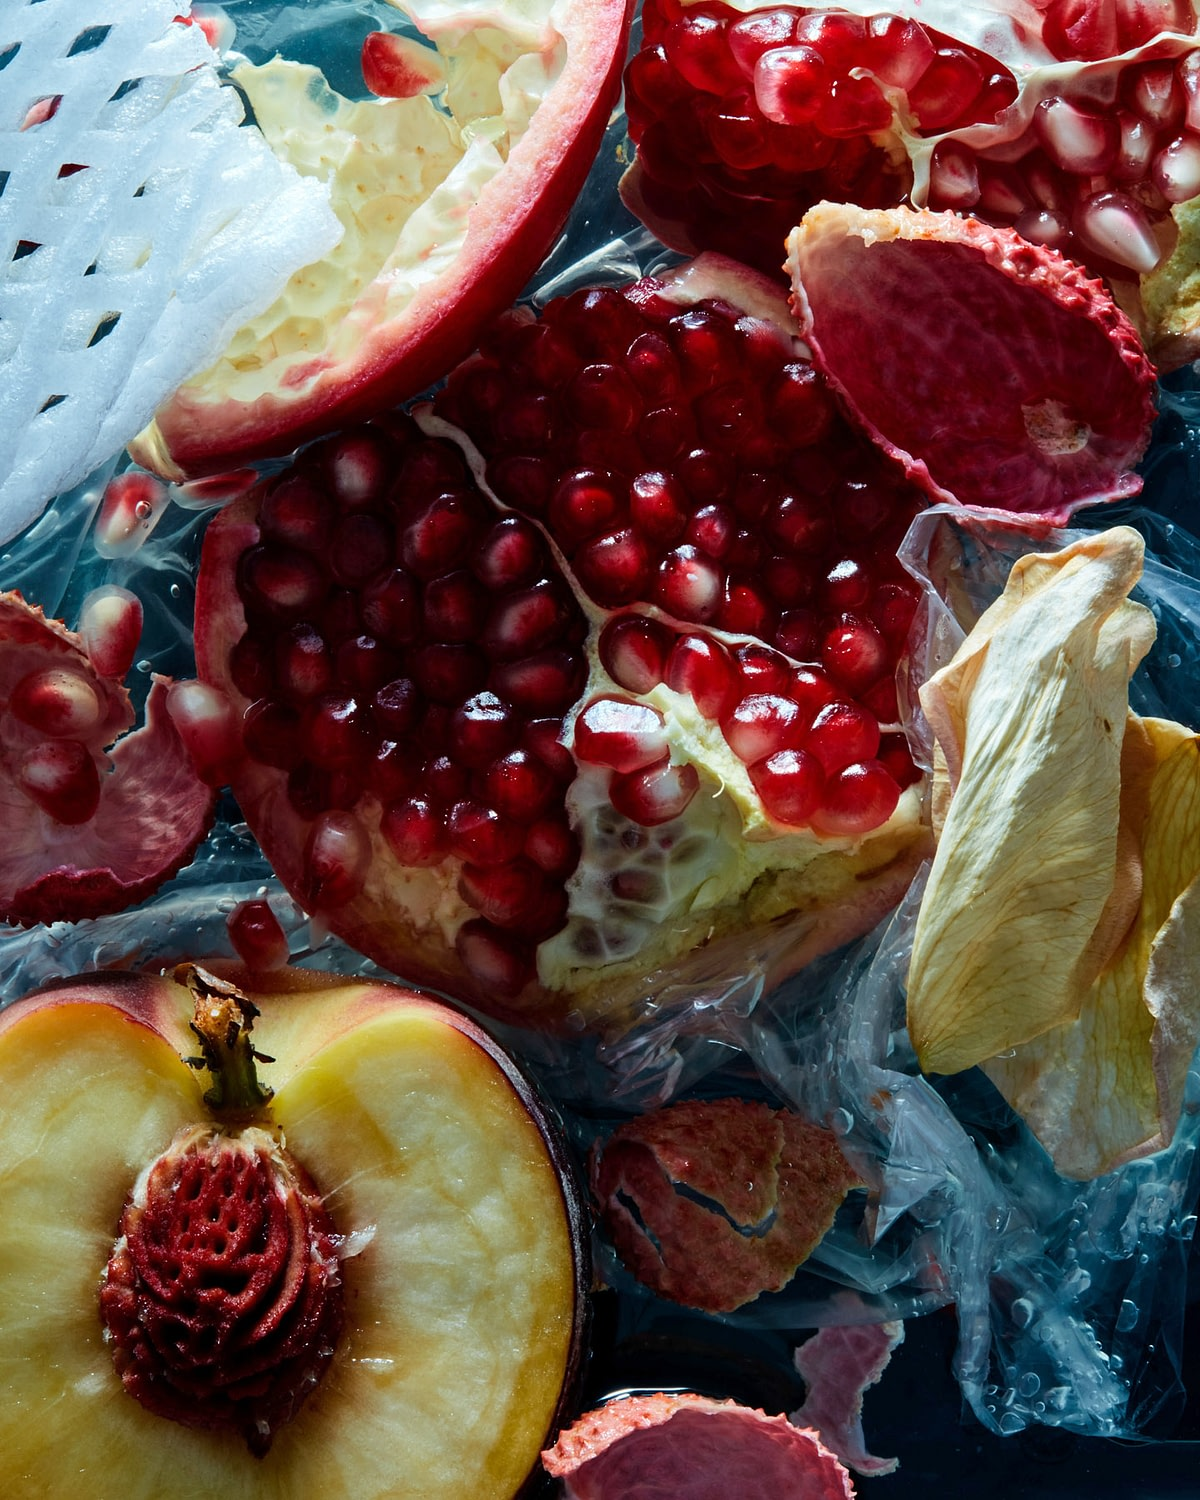 0819_Fruit_Test2603